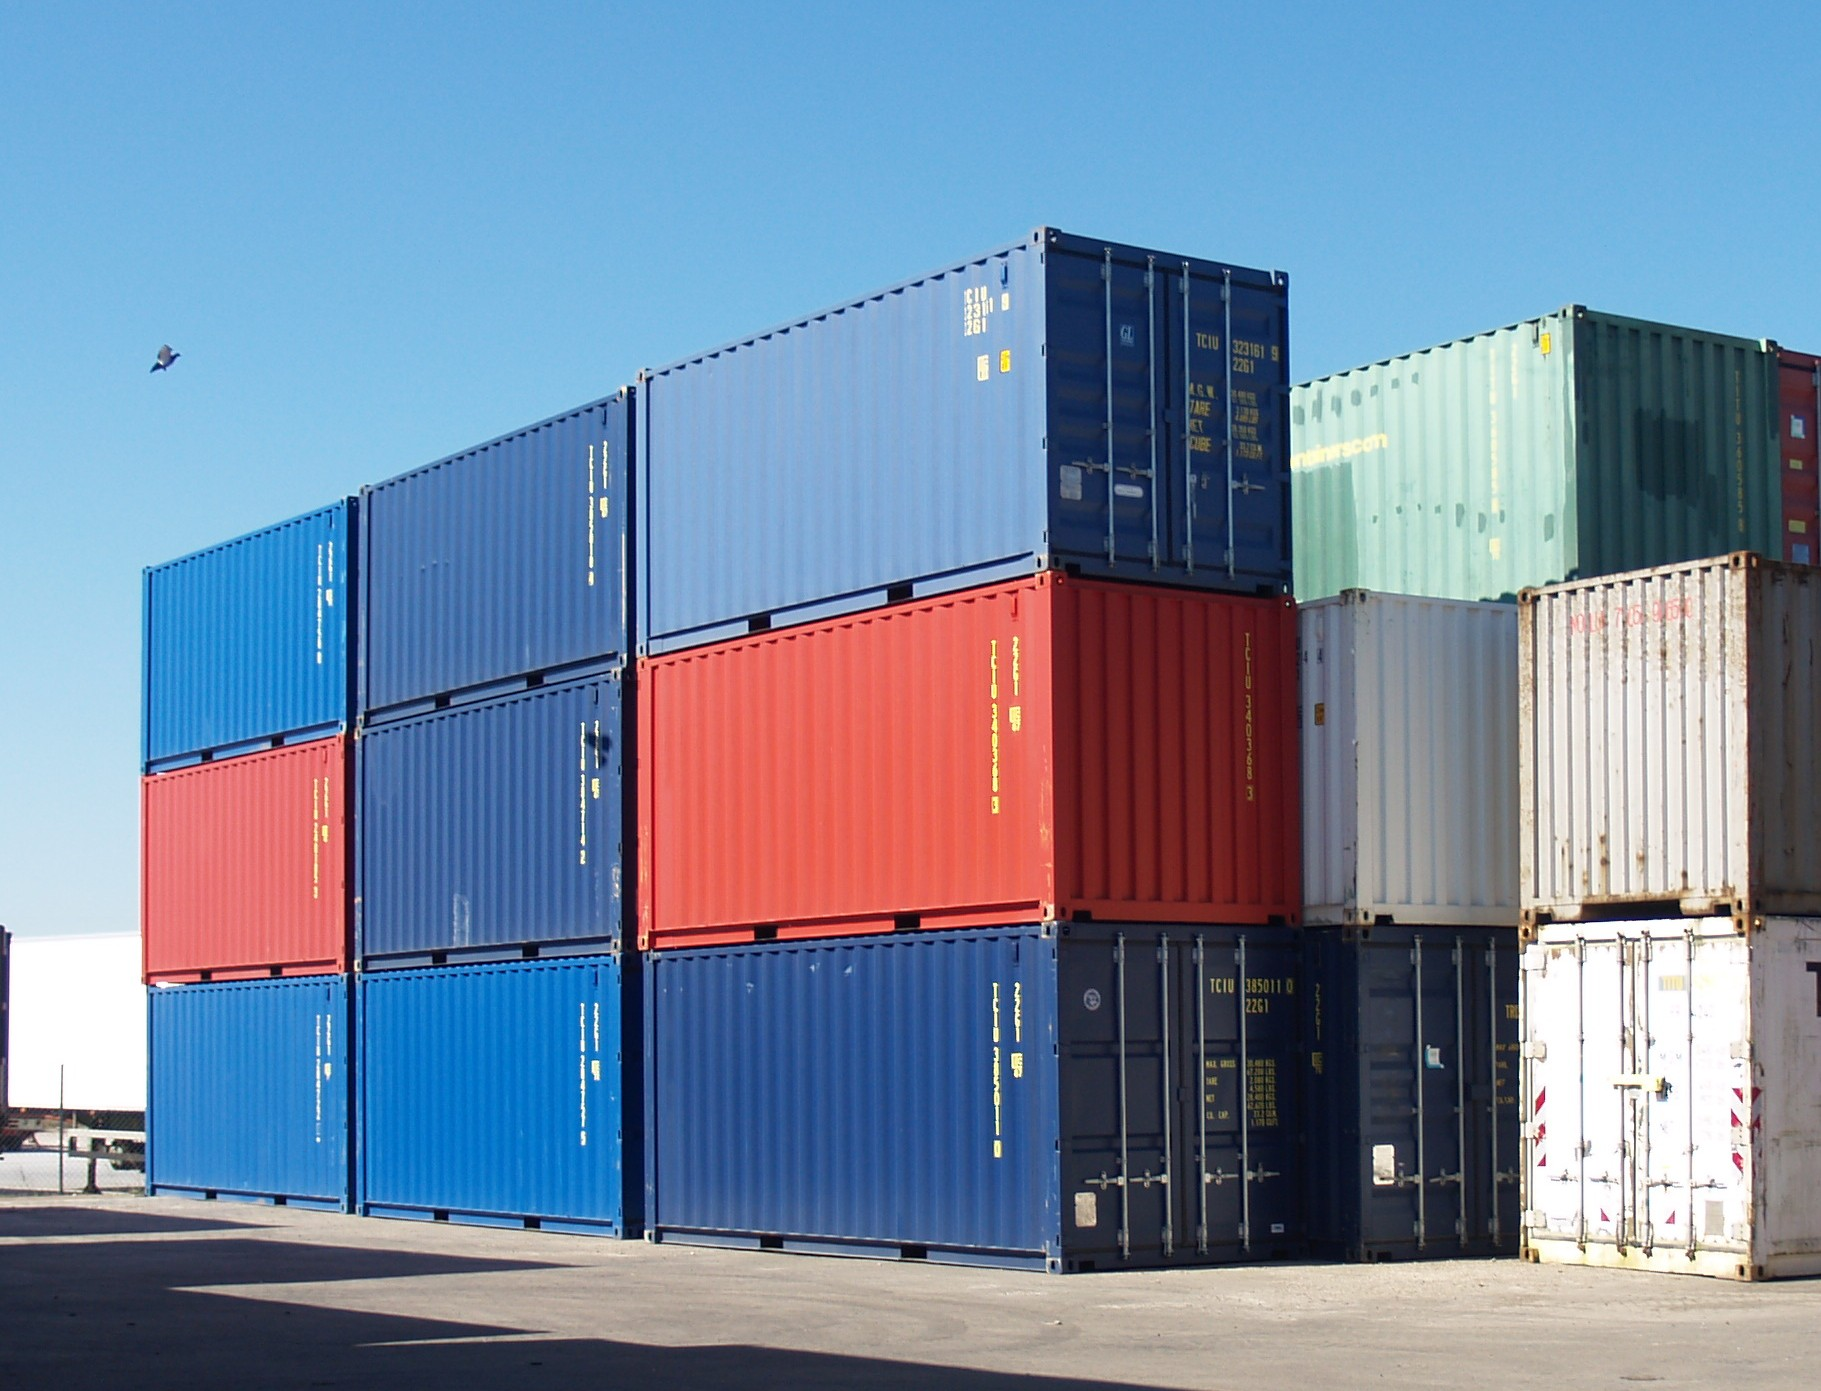 new_20_containers.jpg